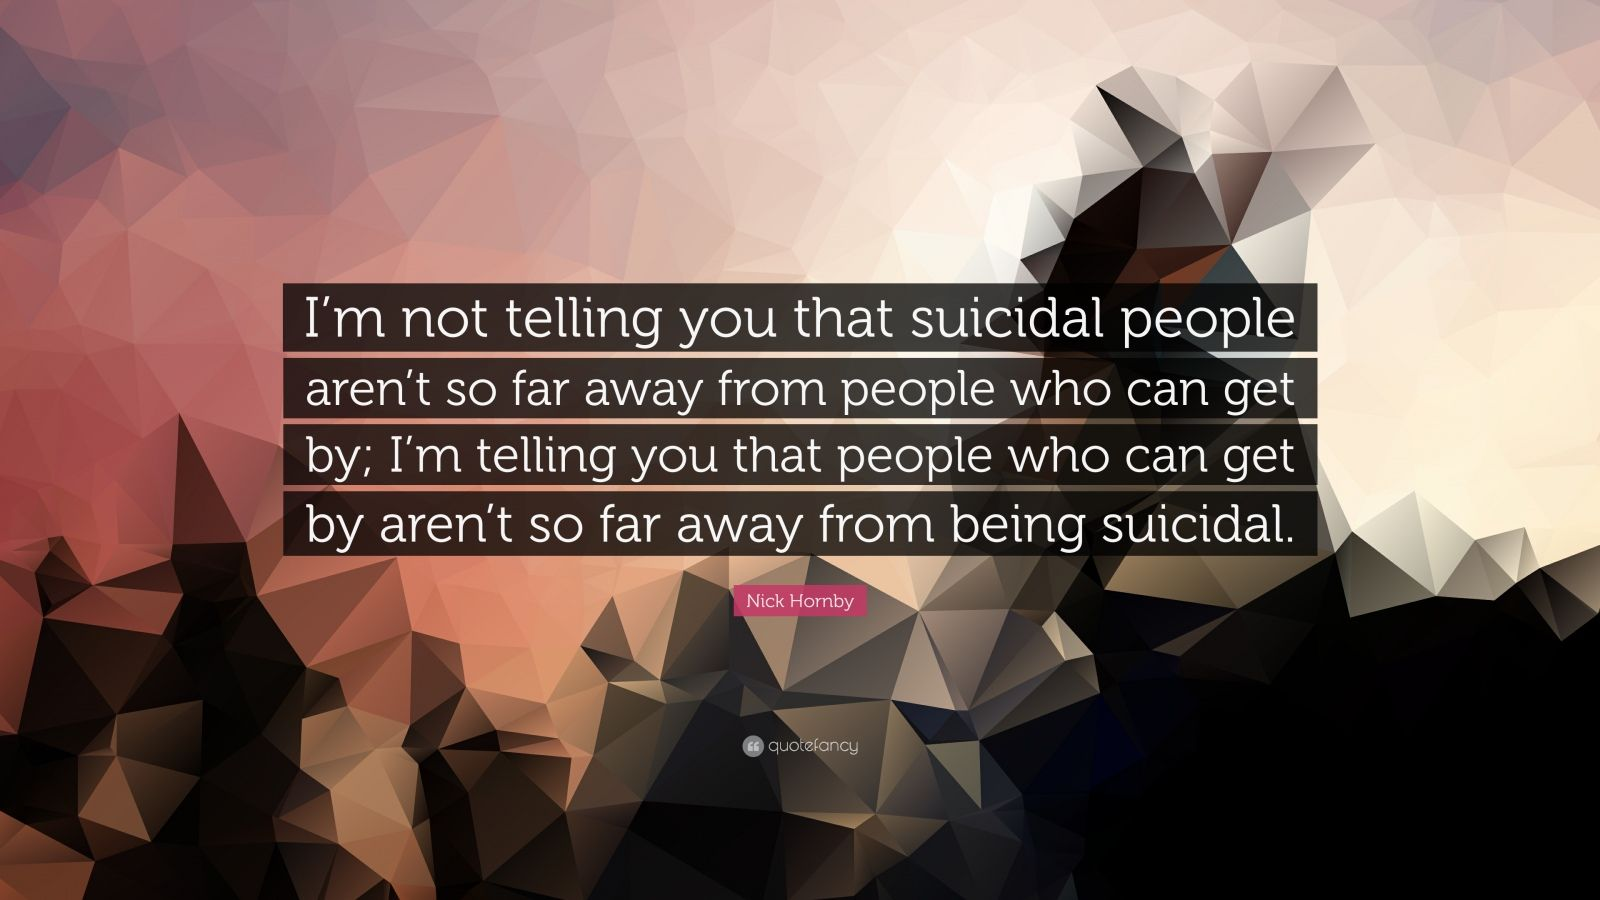 """Nick Hornby Quote: """"I'm not telling you that suicidal people aren't so far away from people who can get by; I'm telling you that people who can get by aren't so far away from being suicidal."""""""